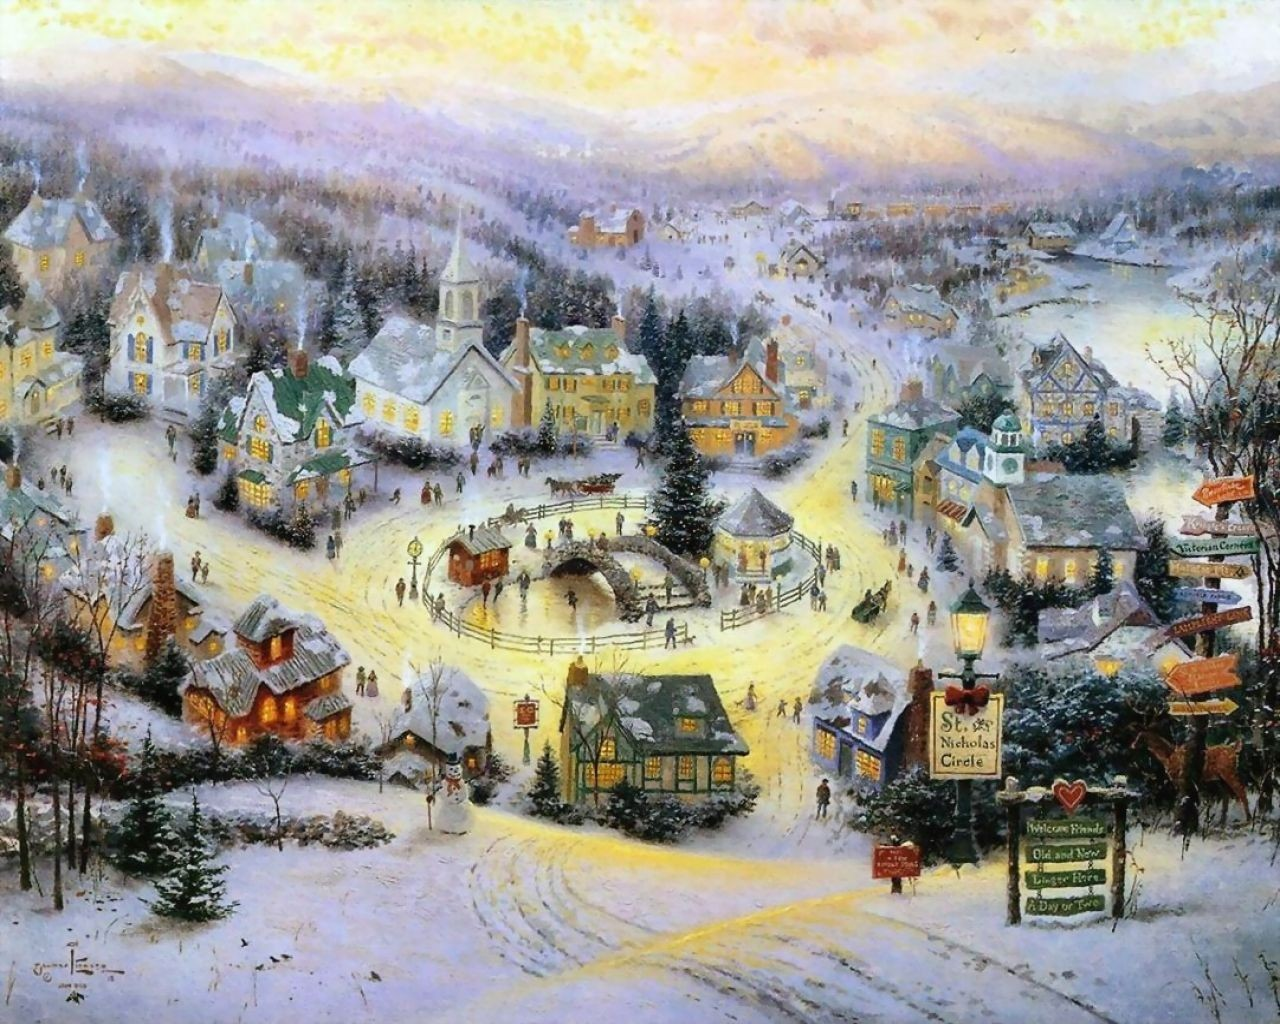 Winter Images Thomas Kinkade Winter HD Wallpaper And